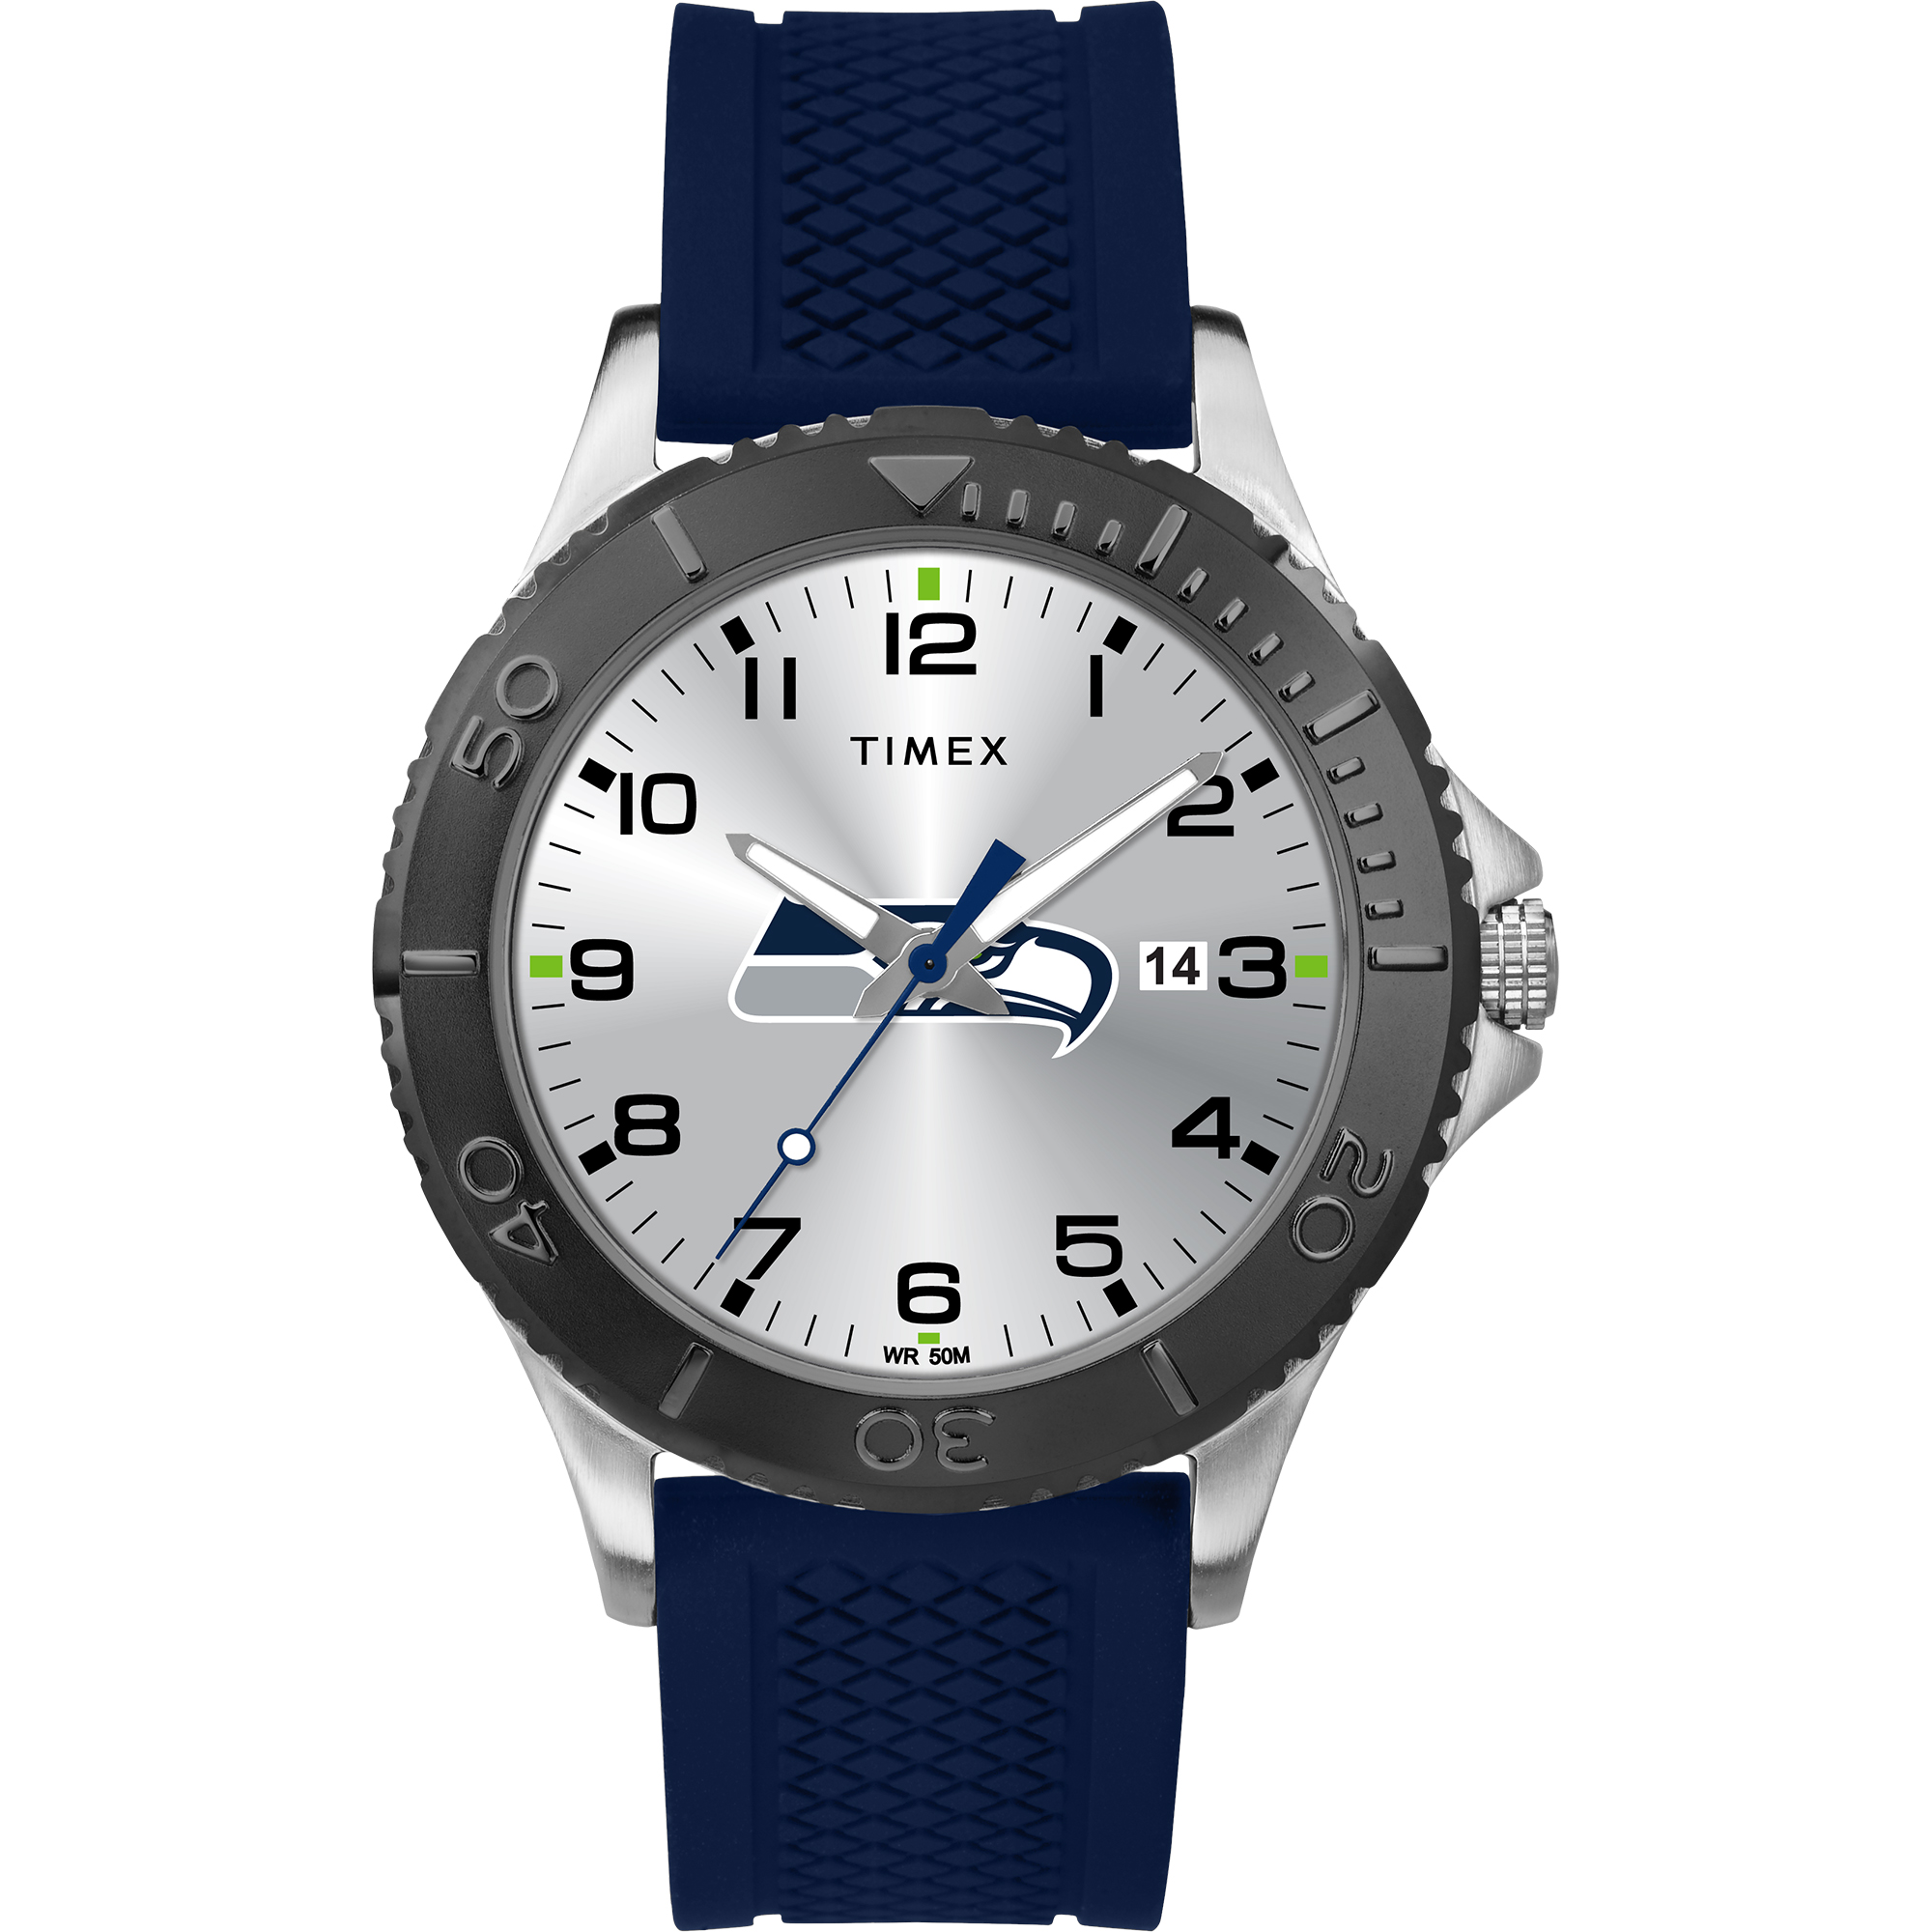 Timex - NFL Tribute Collection Gamer Blue Men's Watch, Seattle Seahawks